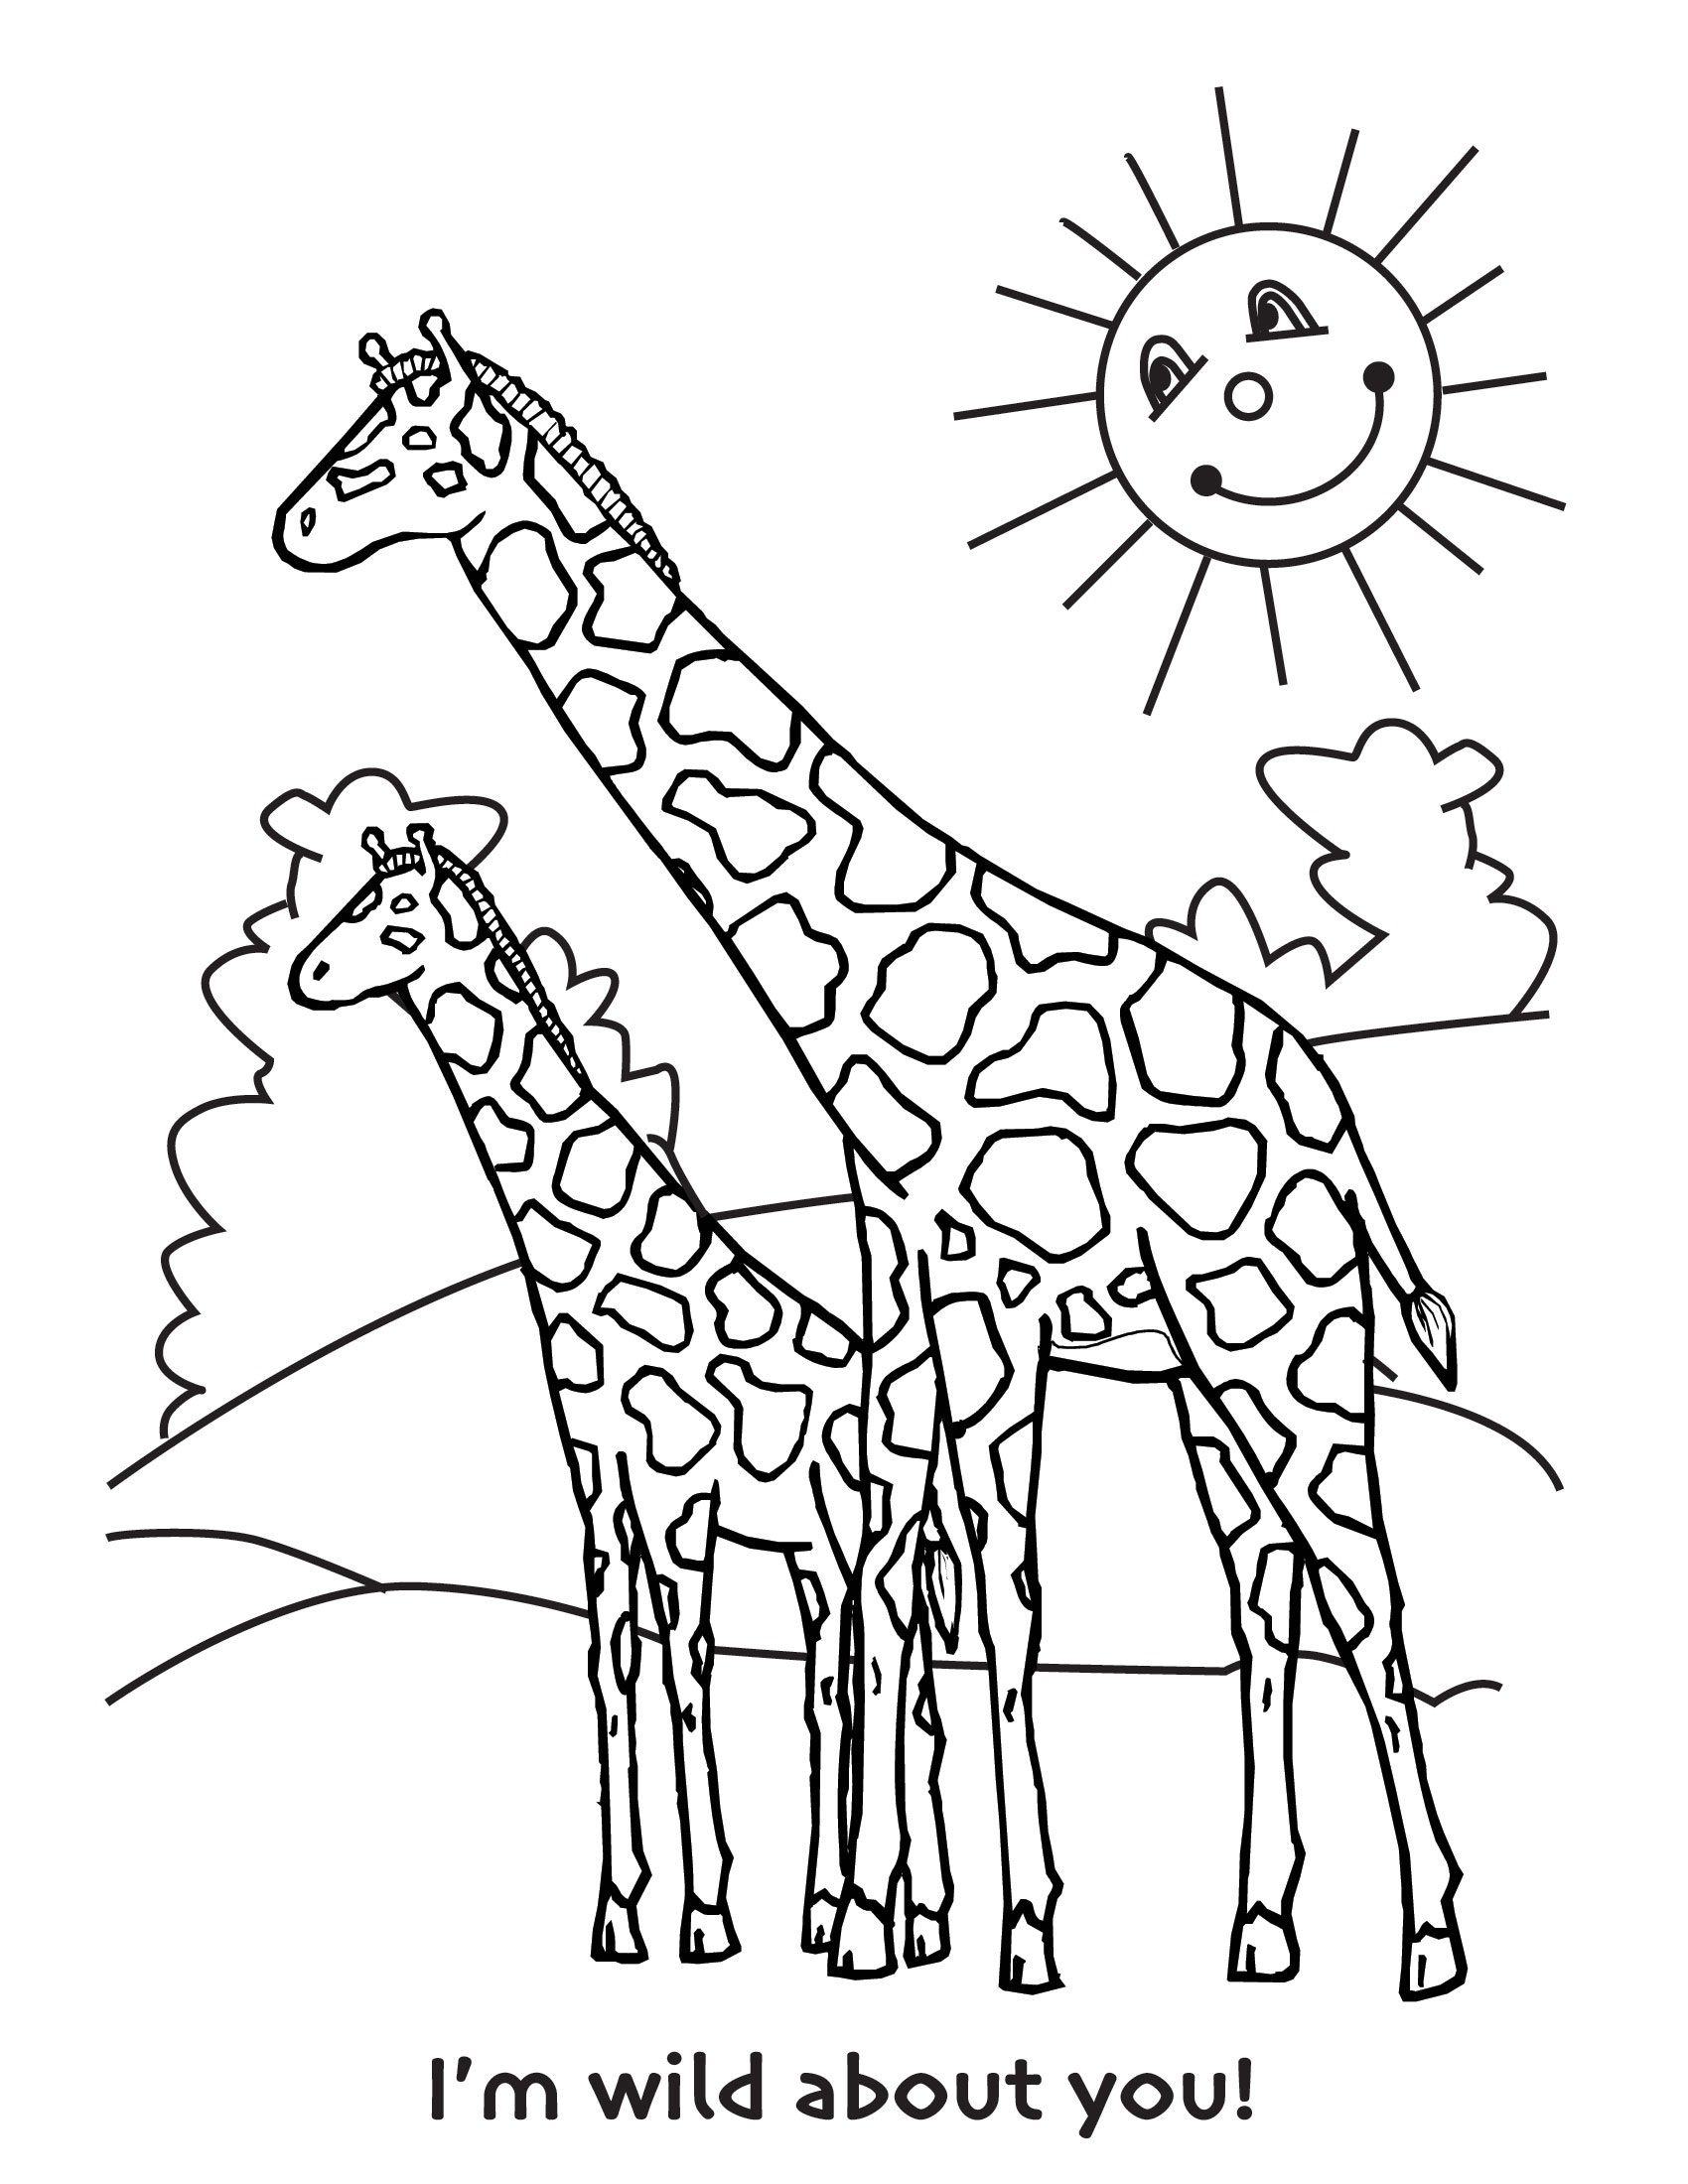 Giraffe Coloring Pages to Print | Coloring Pages | Pinterest